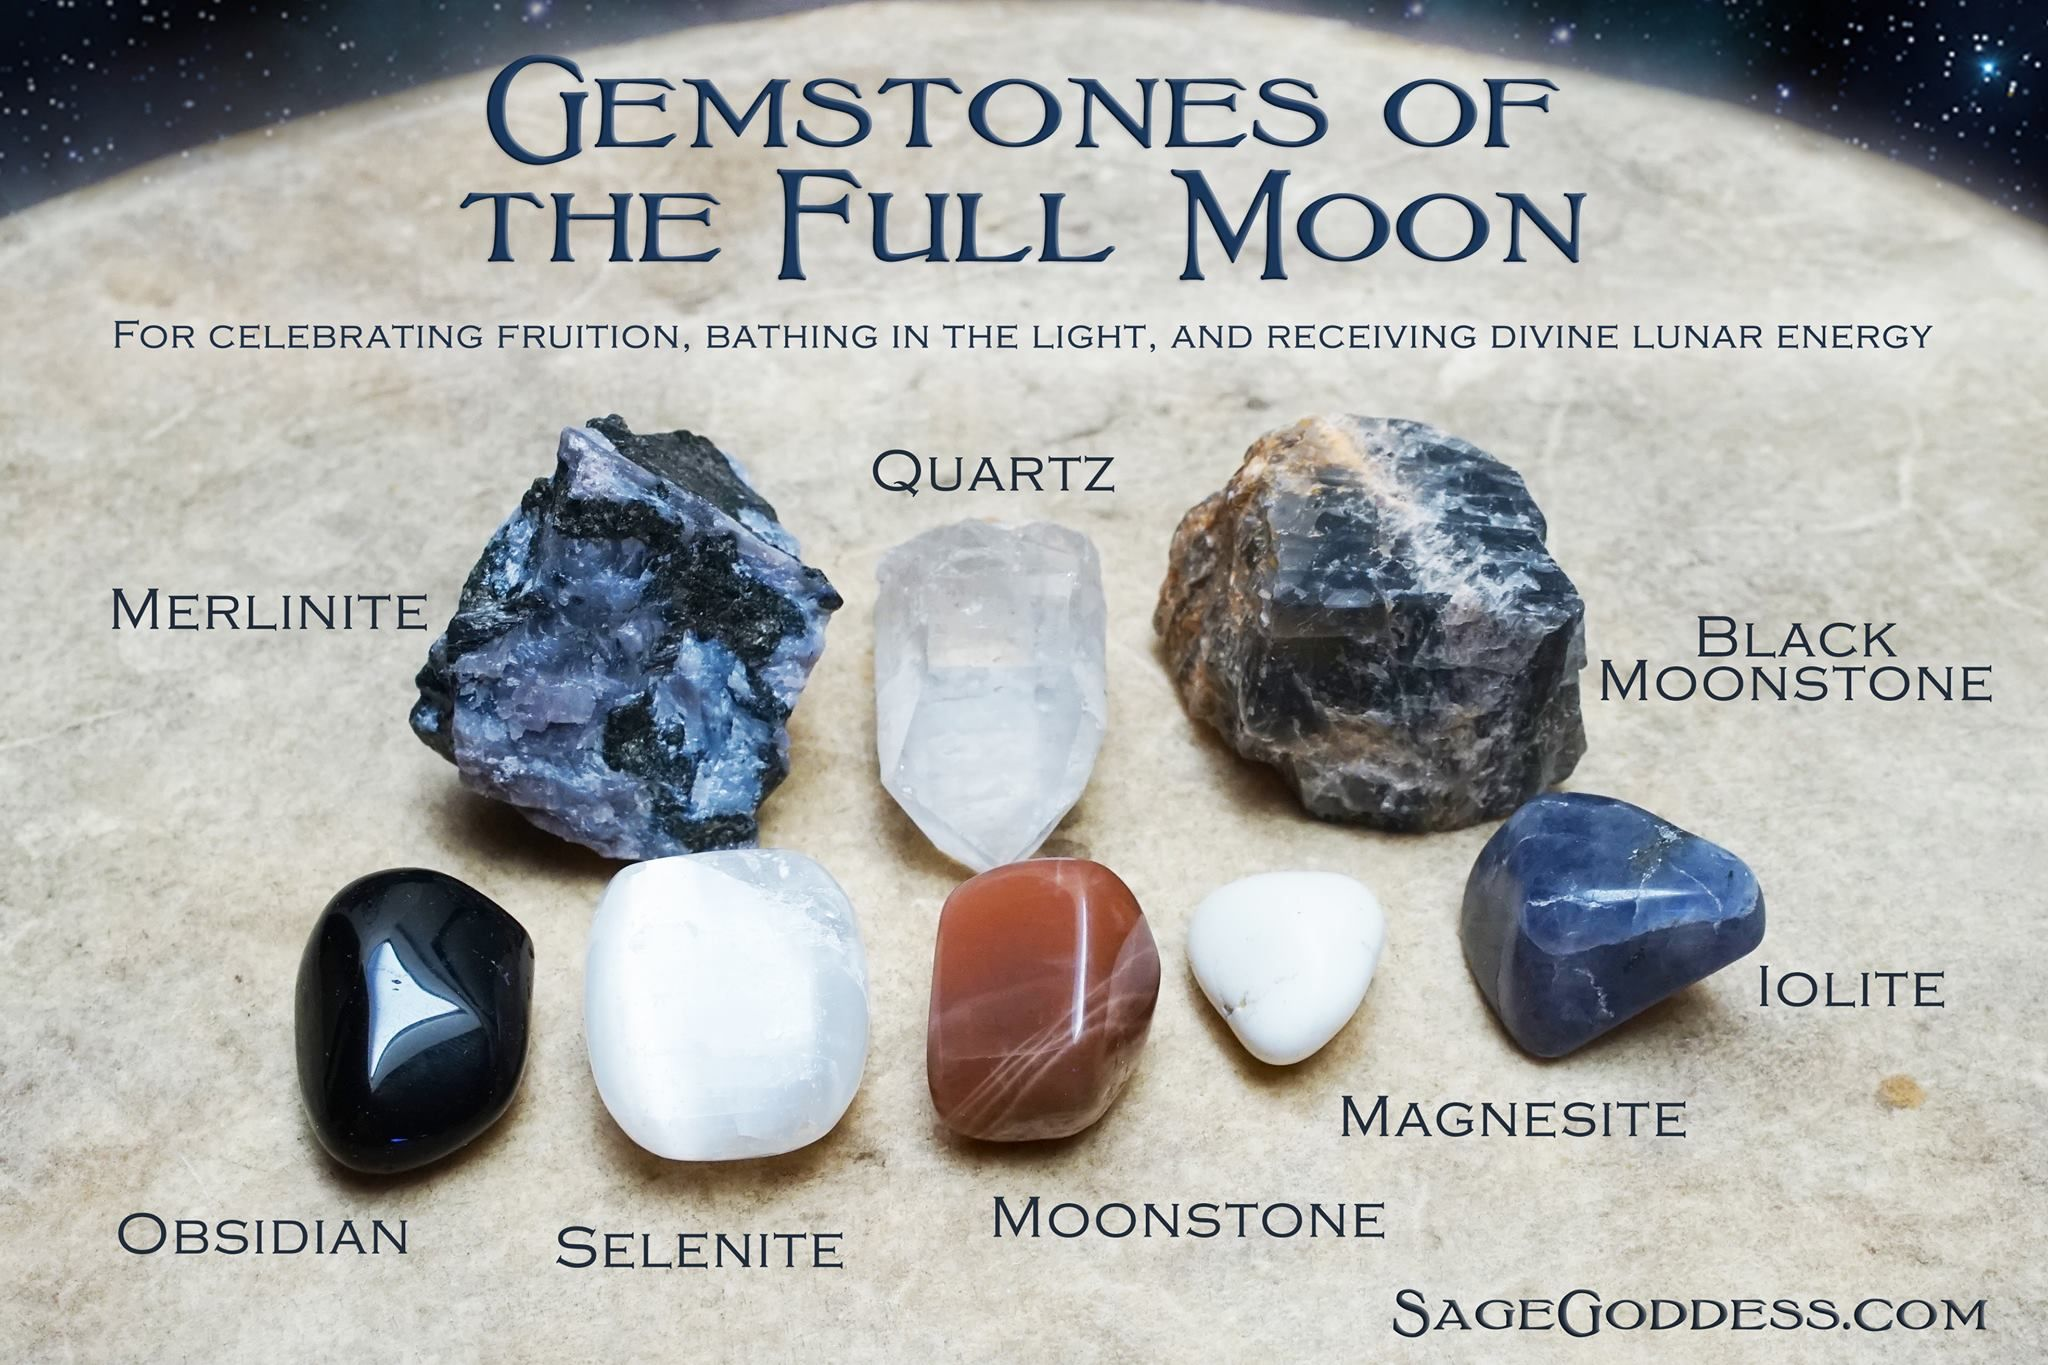 Full Moon Gemstone Set 2.0 for working with the energies